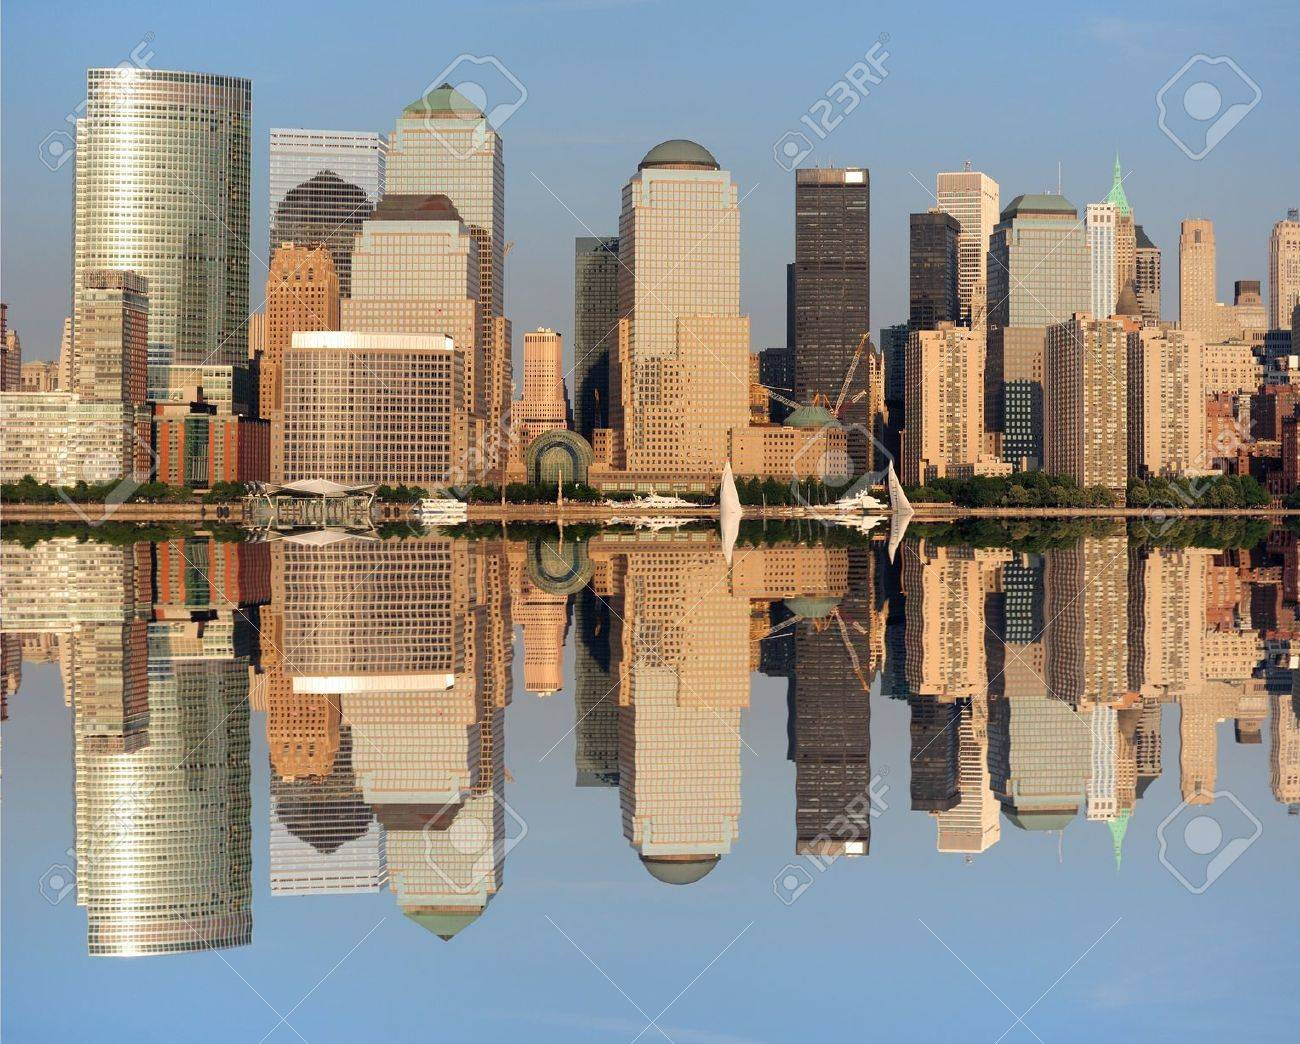 The Lower Manhattan Skyline with serious reflections in New York City. Stock Photo - 8407257